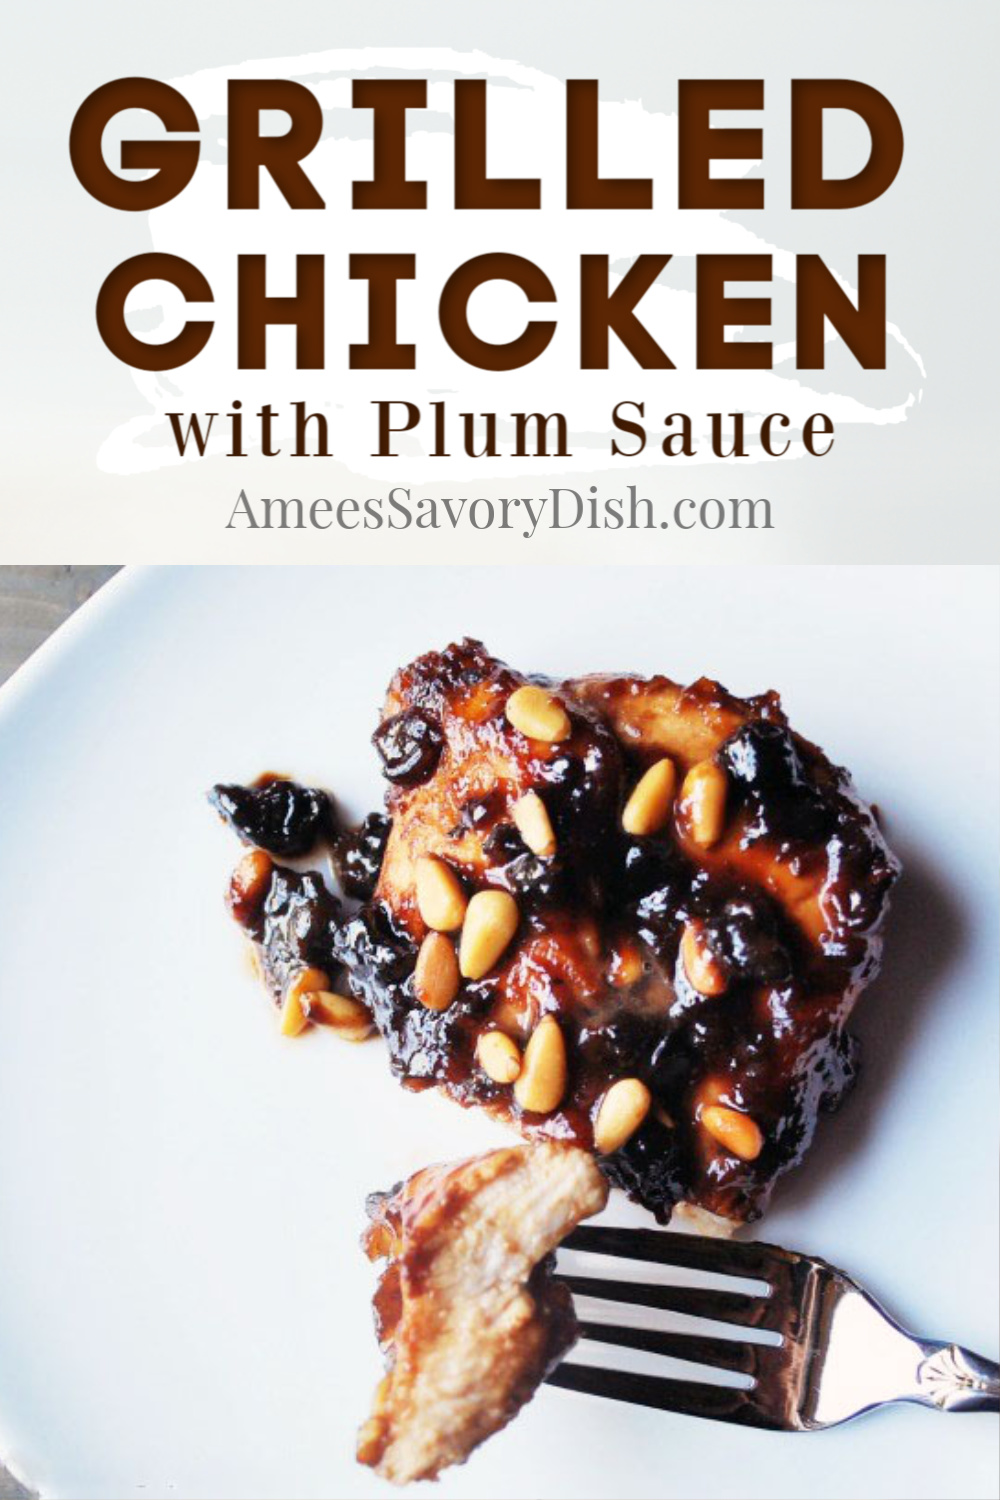 A moist and tender recipe for marinated grilled chicken with plum sauce using pureed plums and balsamic vinegar and topped with toasted pine nuts.  #grilledchicken #chickenrecipes #grilling #chicken #plums via @Ameessavorydish